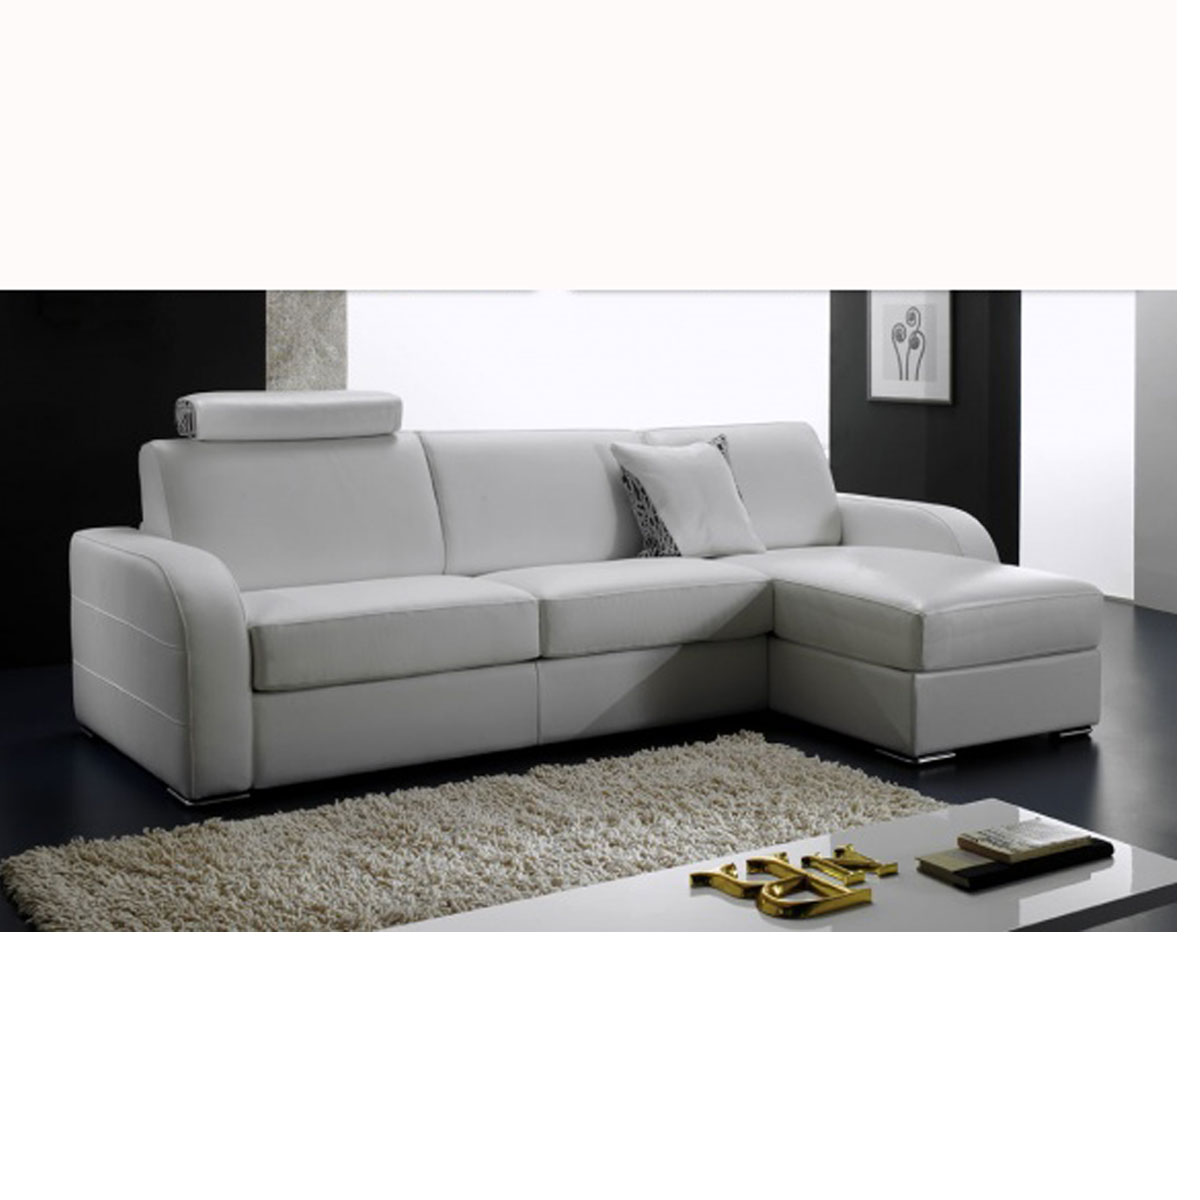 canap d angle convertible petite dimension royal sofa id e de canap et meuble maison. Black Bedroom Furniture Sets. Home Design Ideas